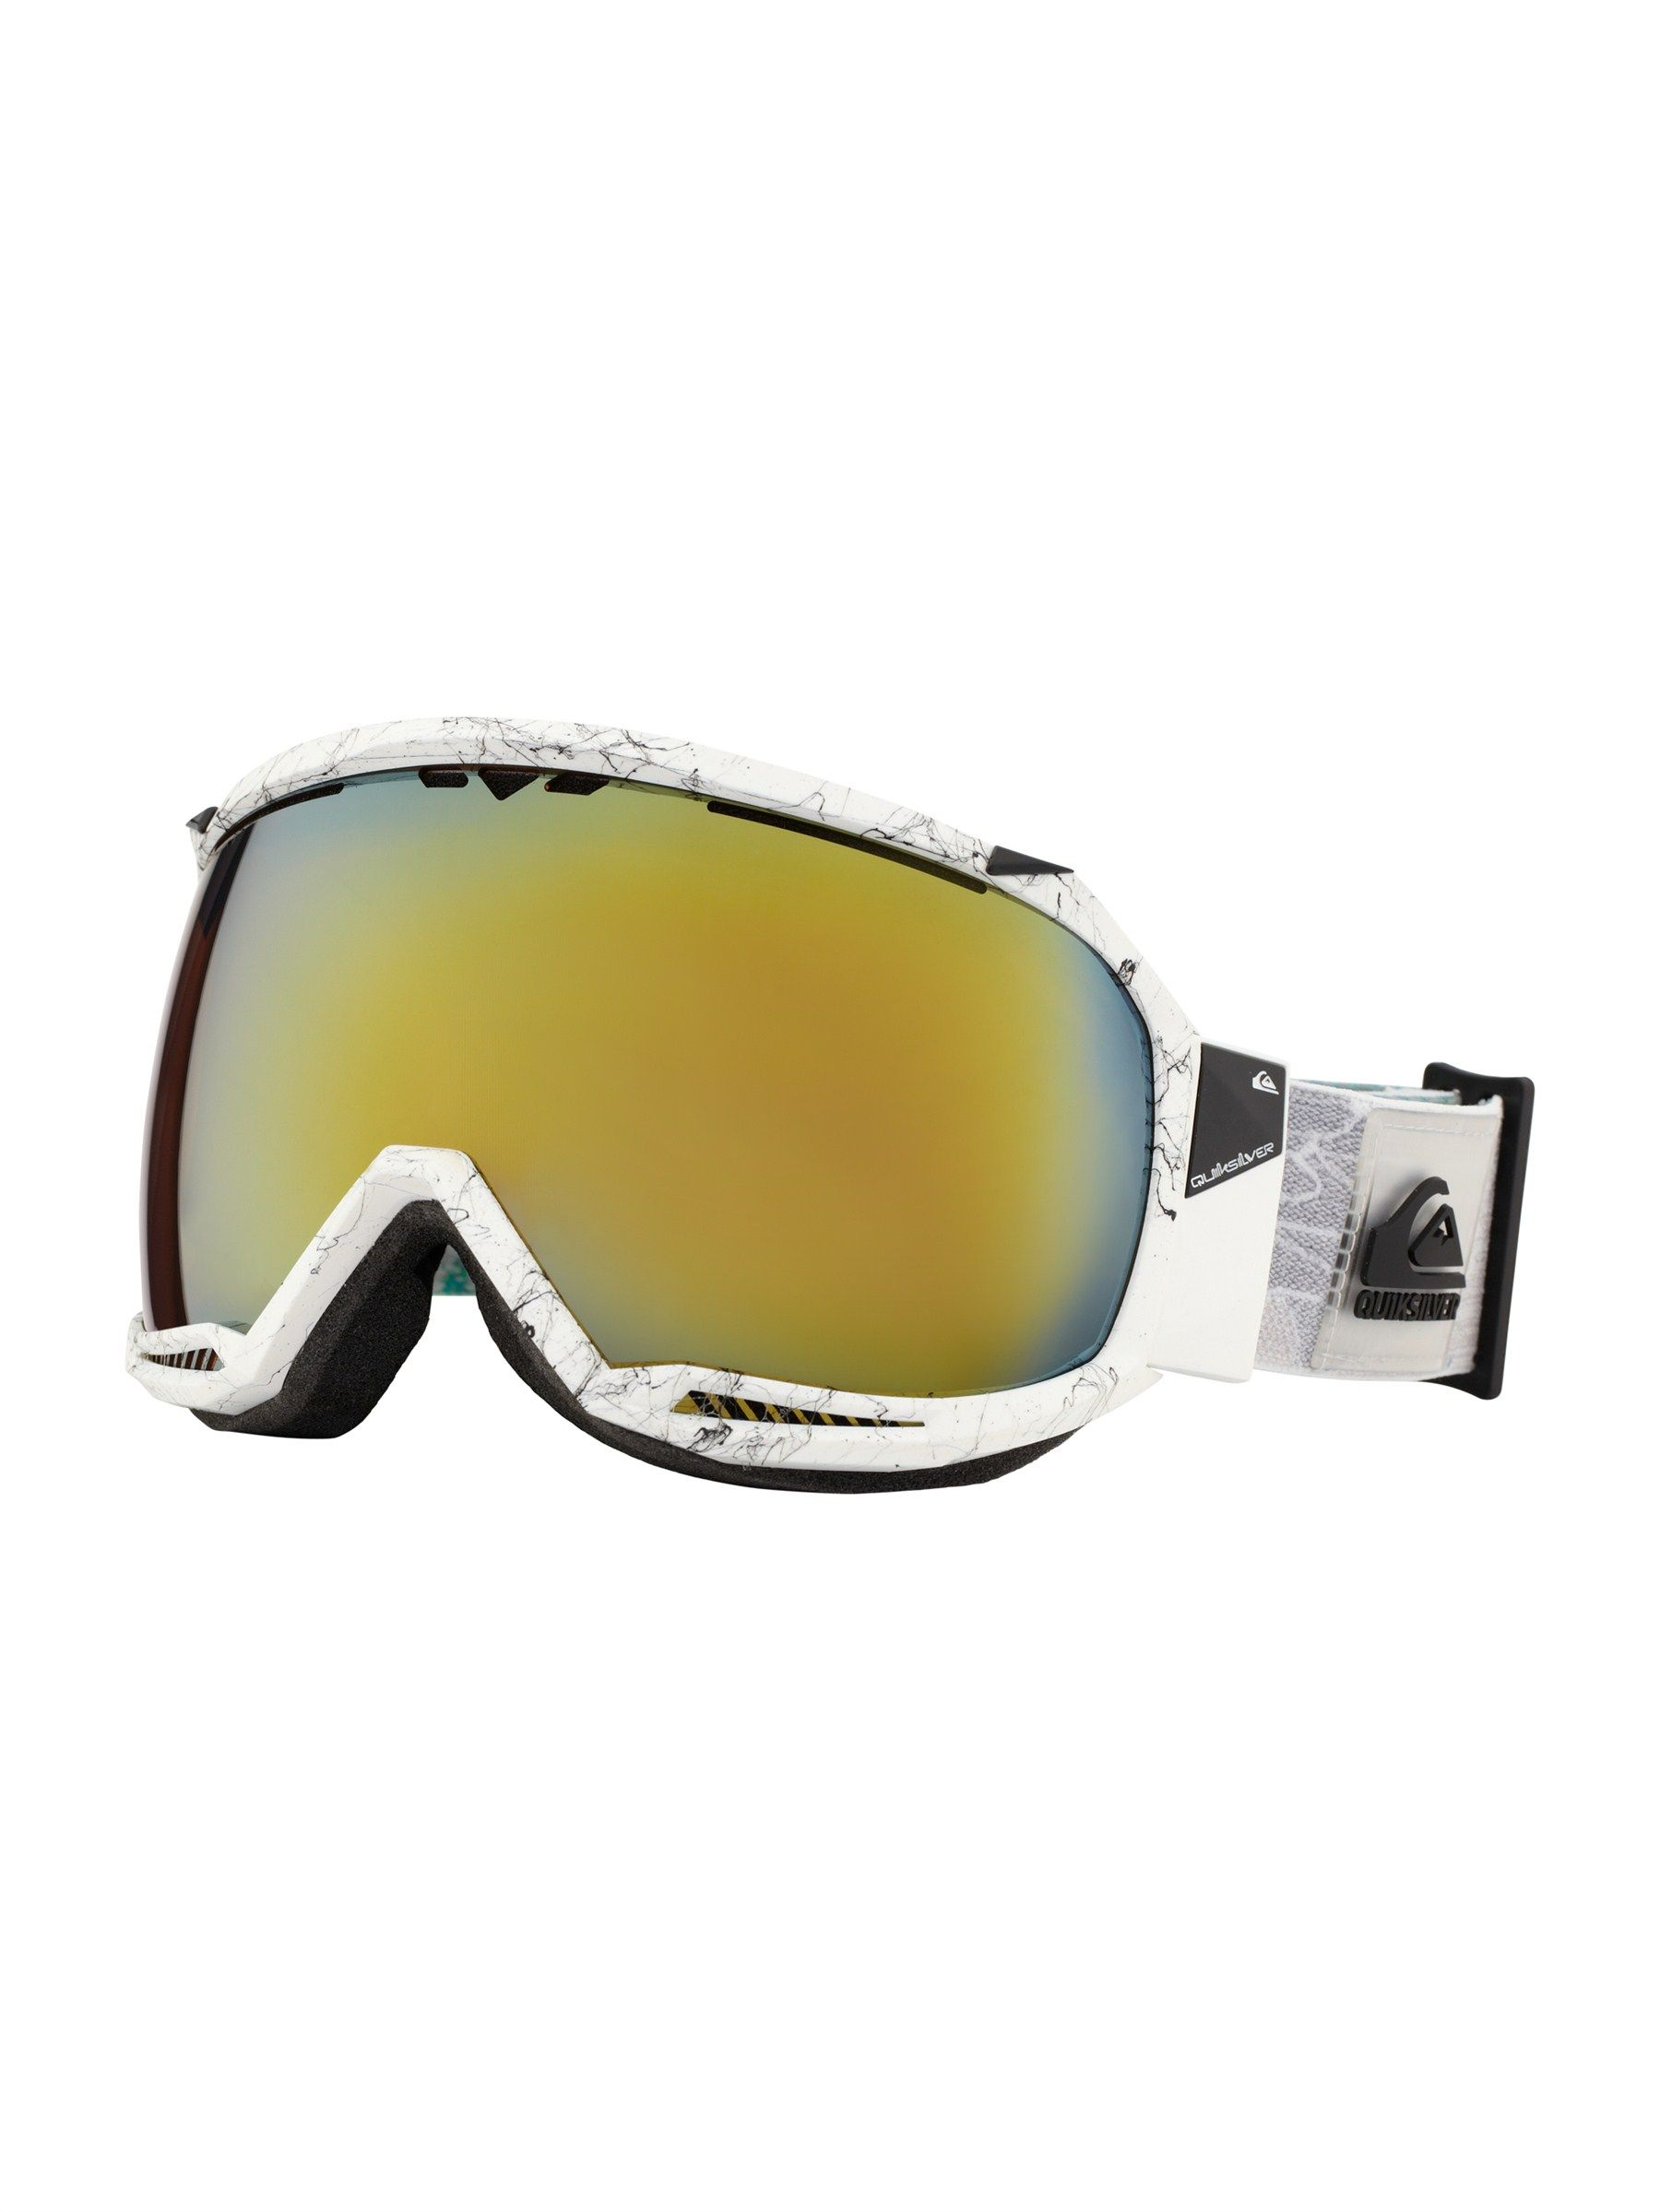 Hubble Goggles Eqytg00054 Quiksilver Goggles Surf Outfit Snow Goggles